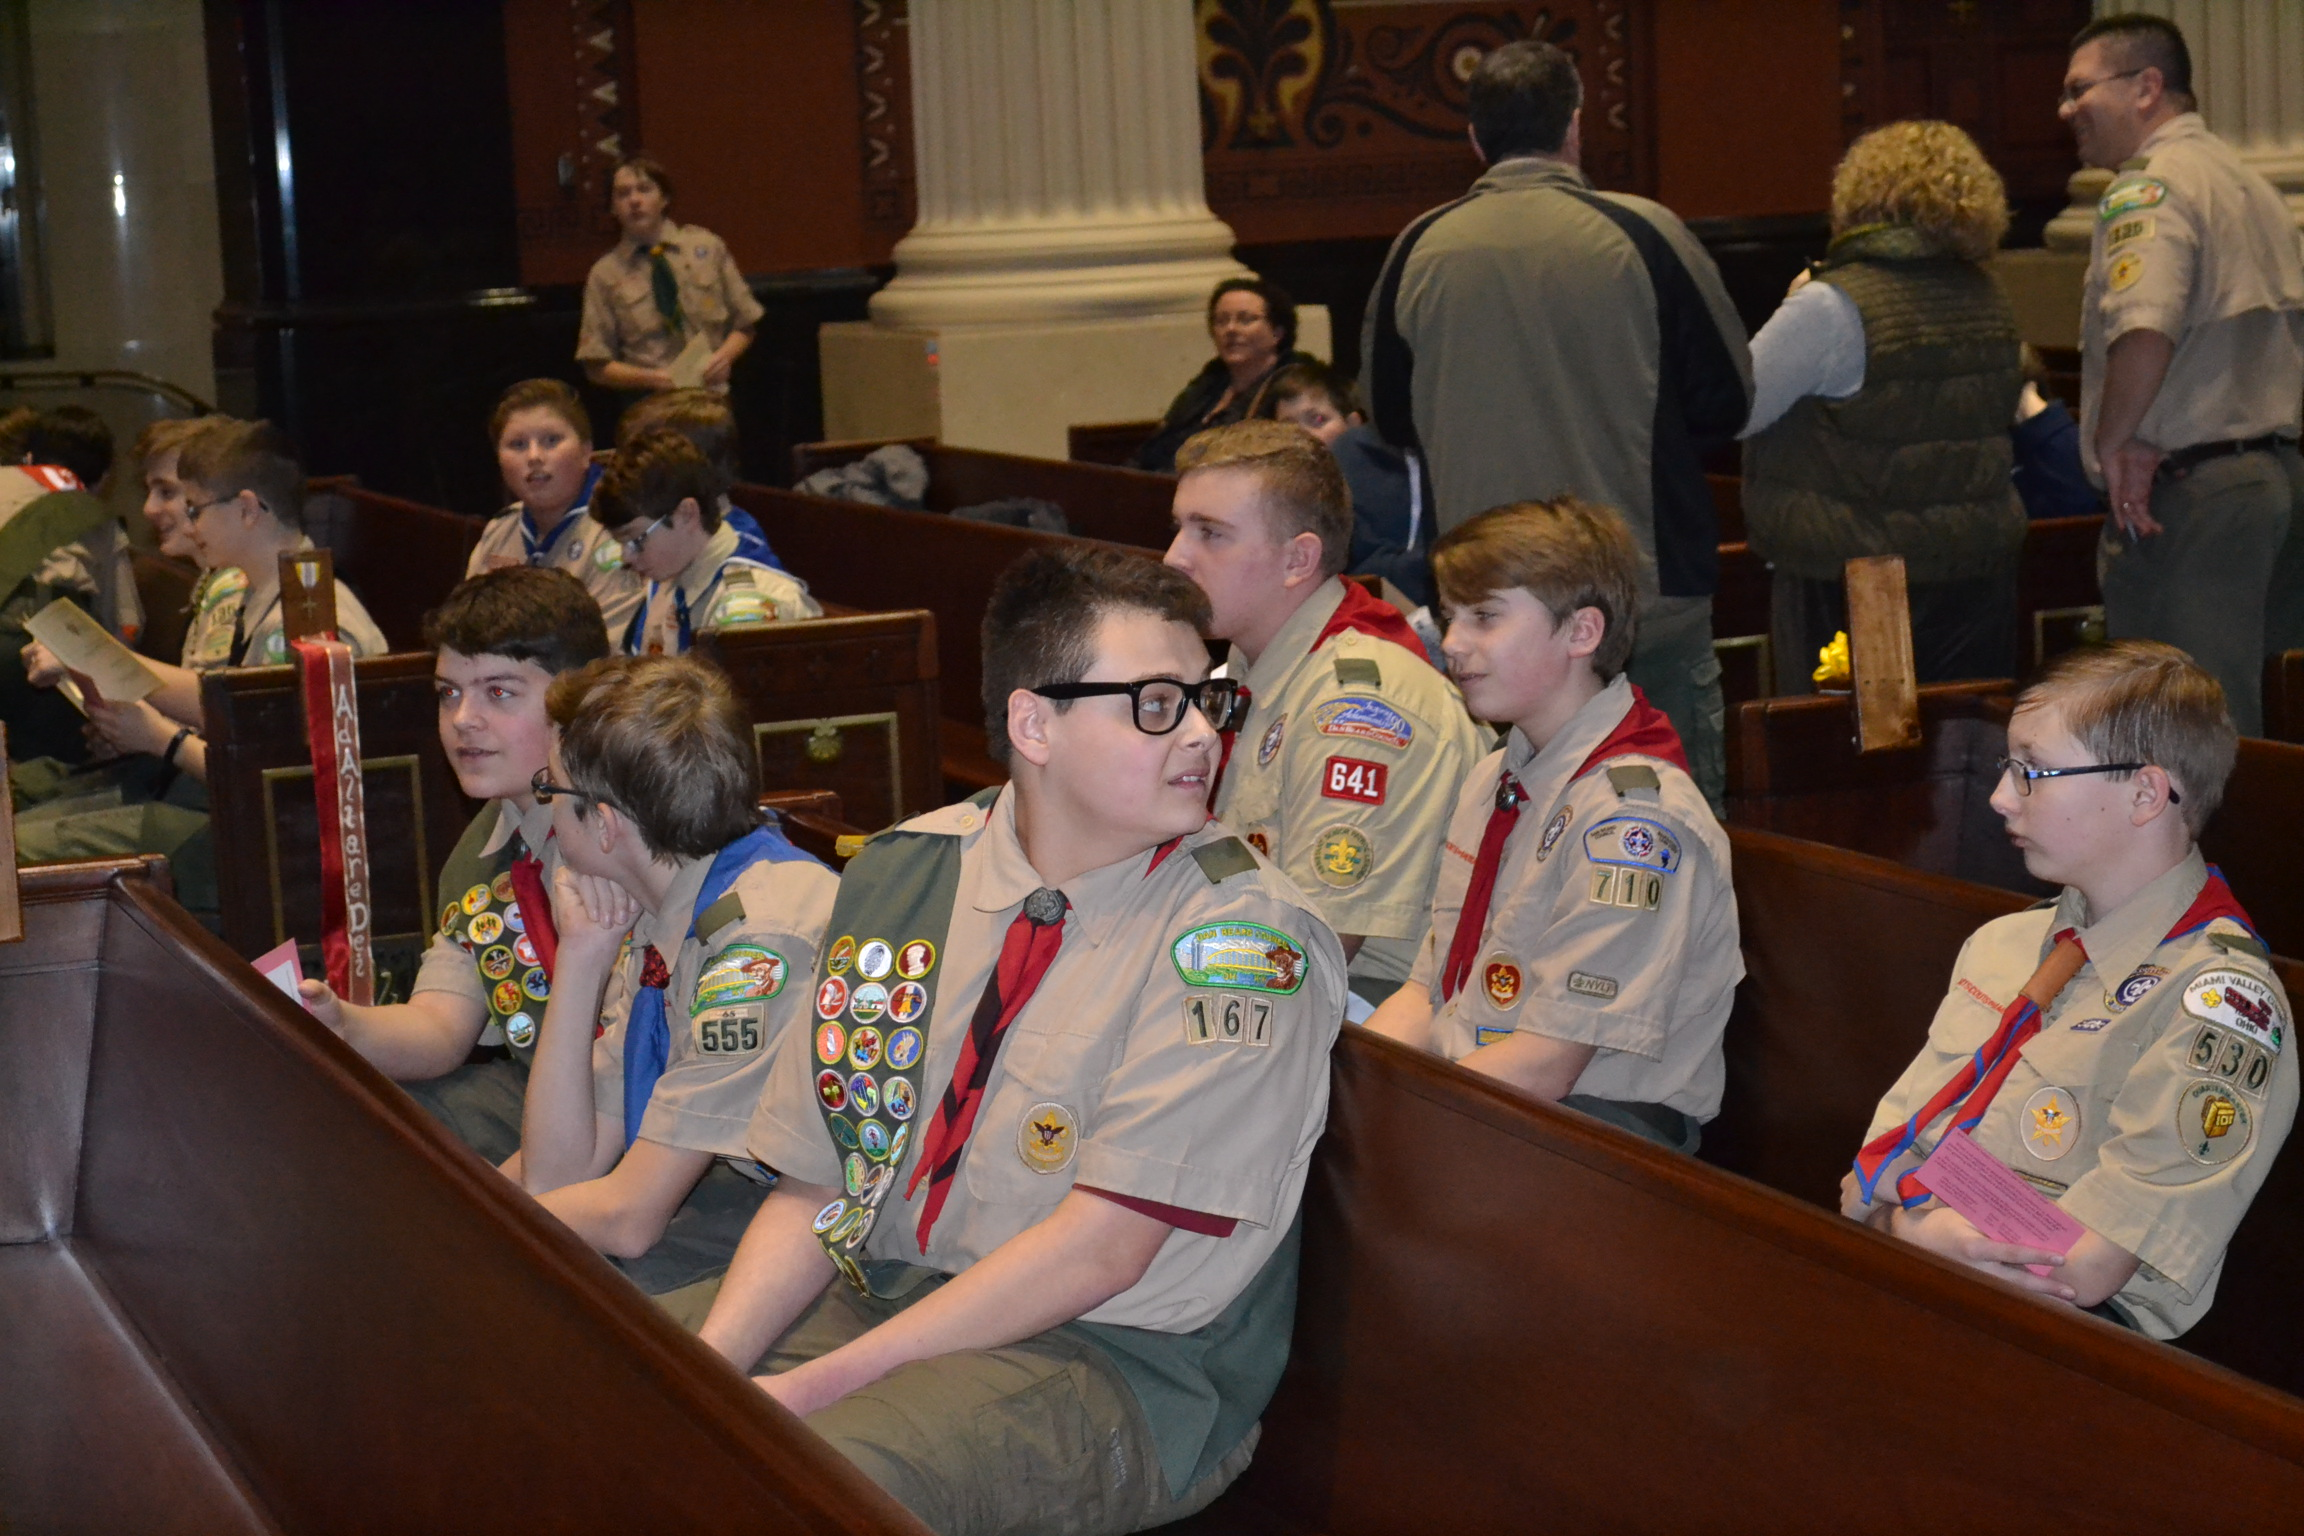 Boy Scouts gather at the Cathedral for the Emblems and Awards ceremony. (CT Photo/Greg Hartman)